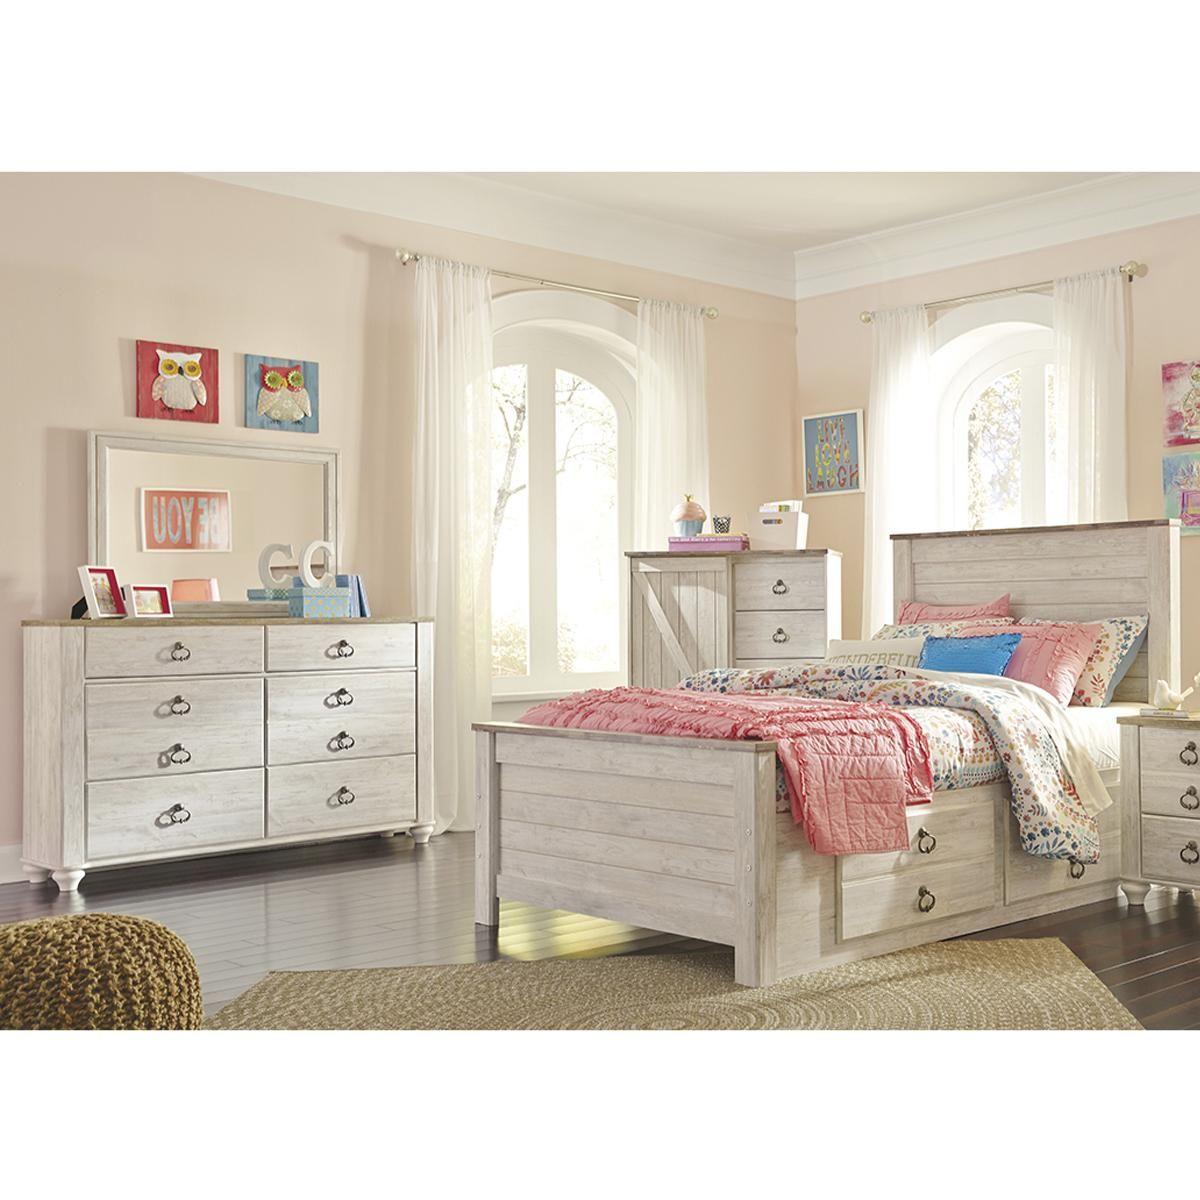 Little Dreamer Willowton 3 Piece Full Bedroom Set In Whitewash Nebraska Furniture Mart In 2020 Twin Bedroom Sets Bedroom Set Ashley Bedroom Furniture Sets